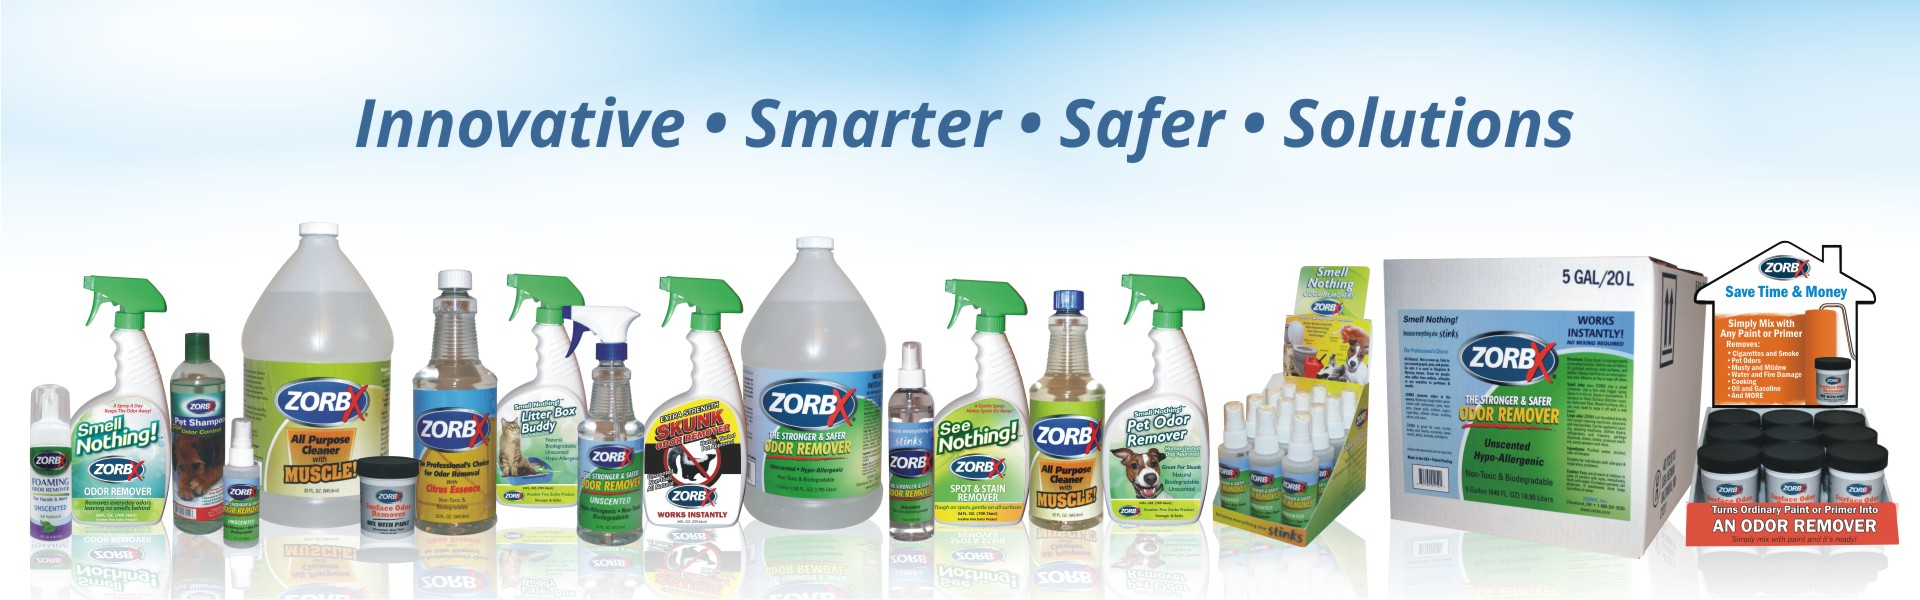 Zorbx full line of products